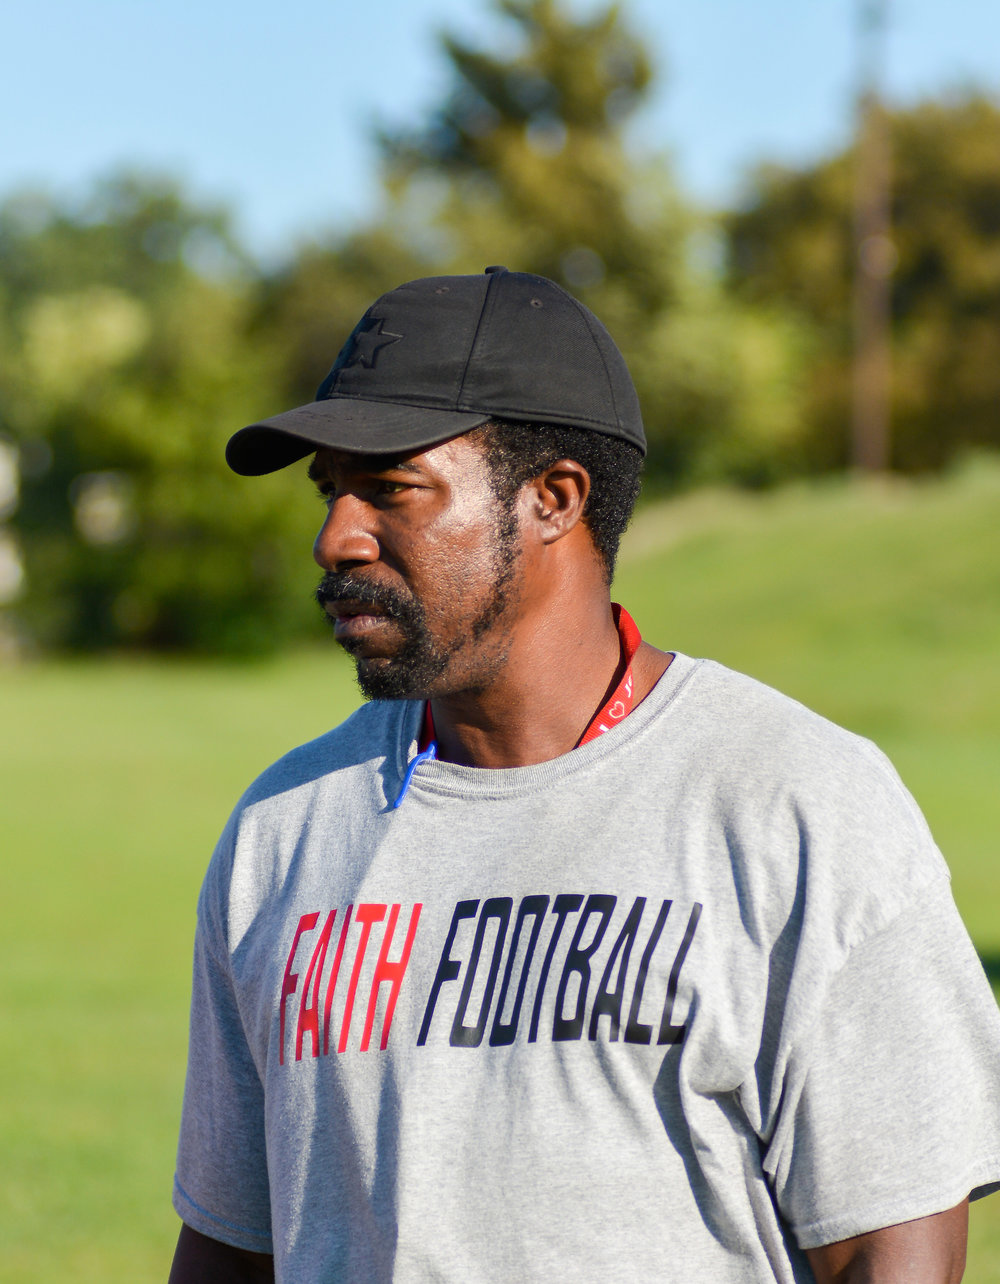 Sherwyn Thomas, the founder and head football coach of the College of Faith